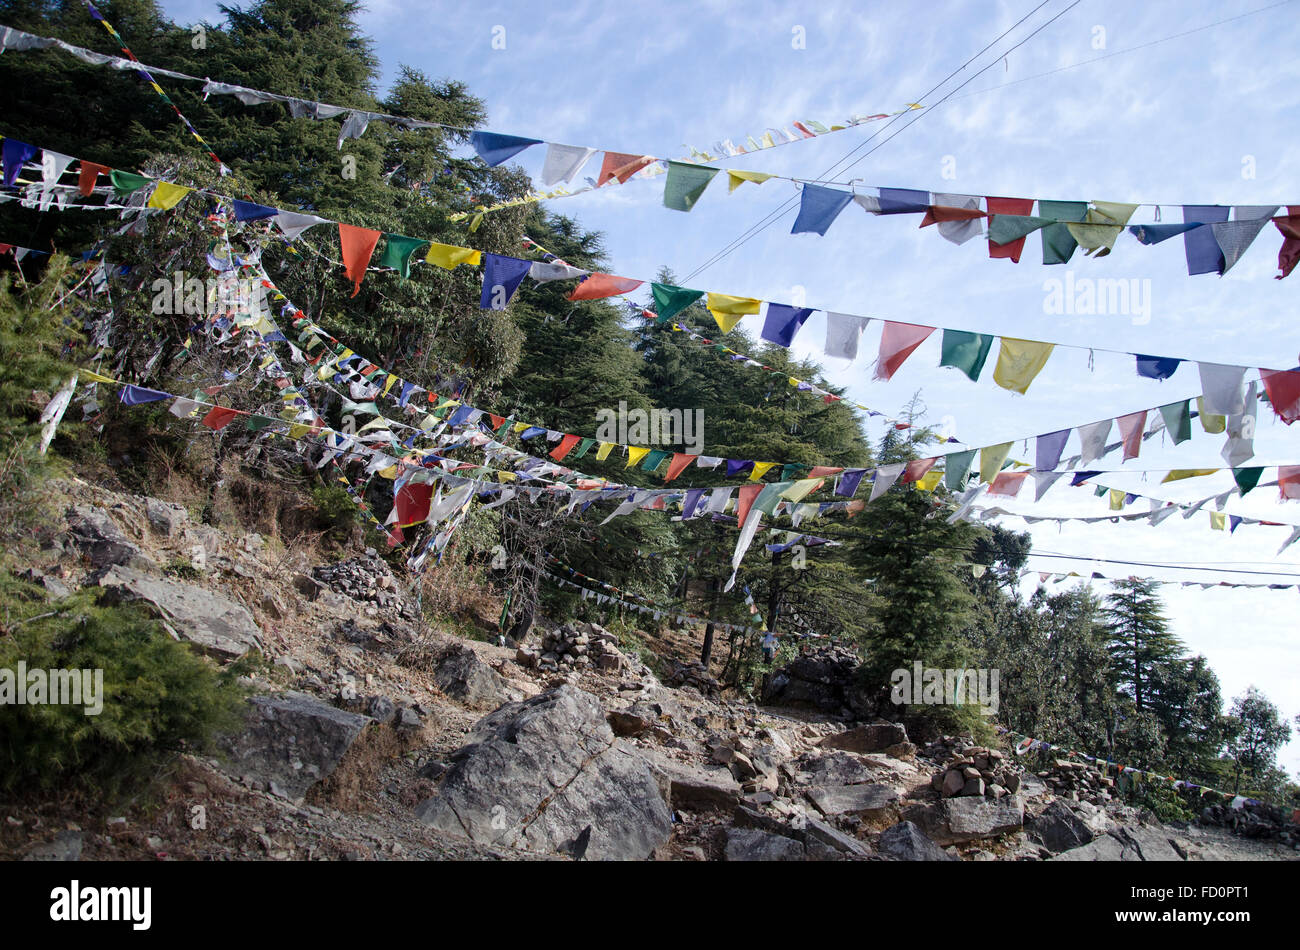 Prayer flags, Dharamsala, Himachal Pradesh, India - Stock Image